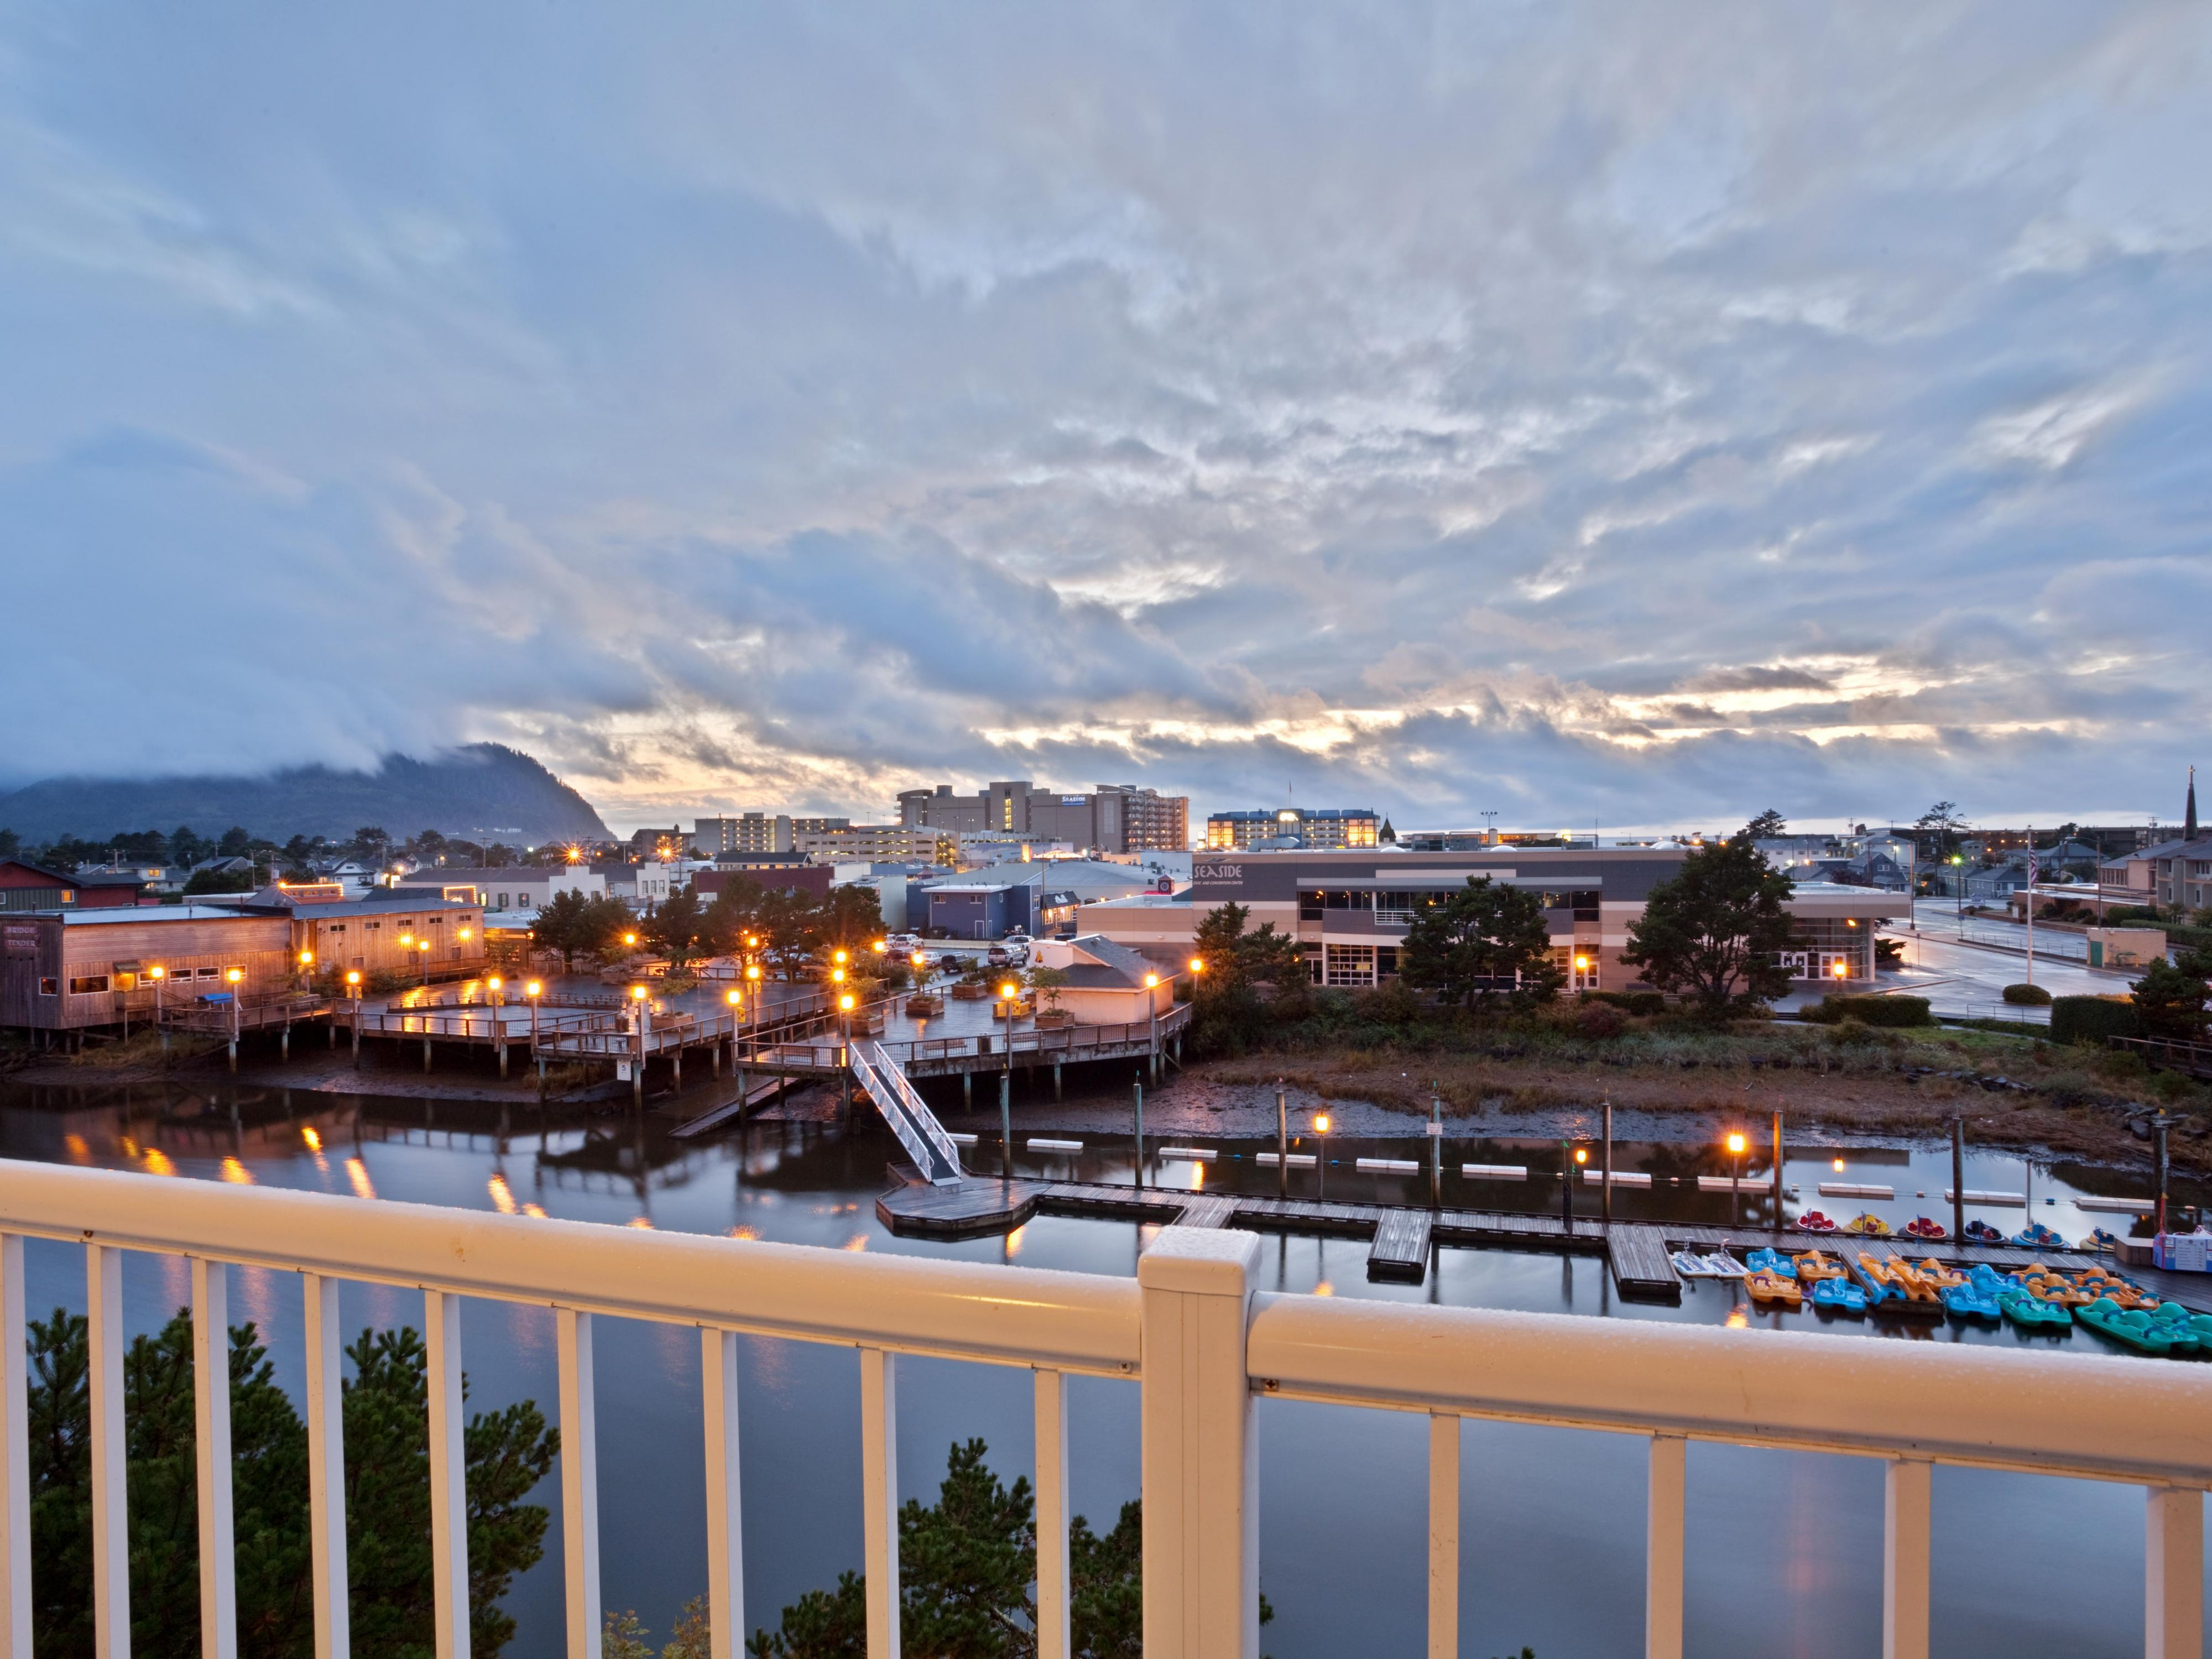 Ask for a riverview room and enjoy a relaxing sunset.